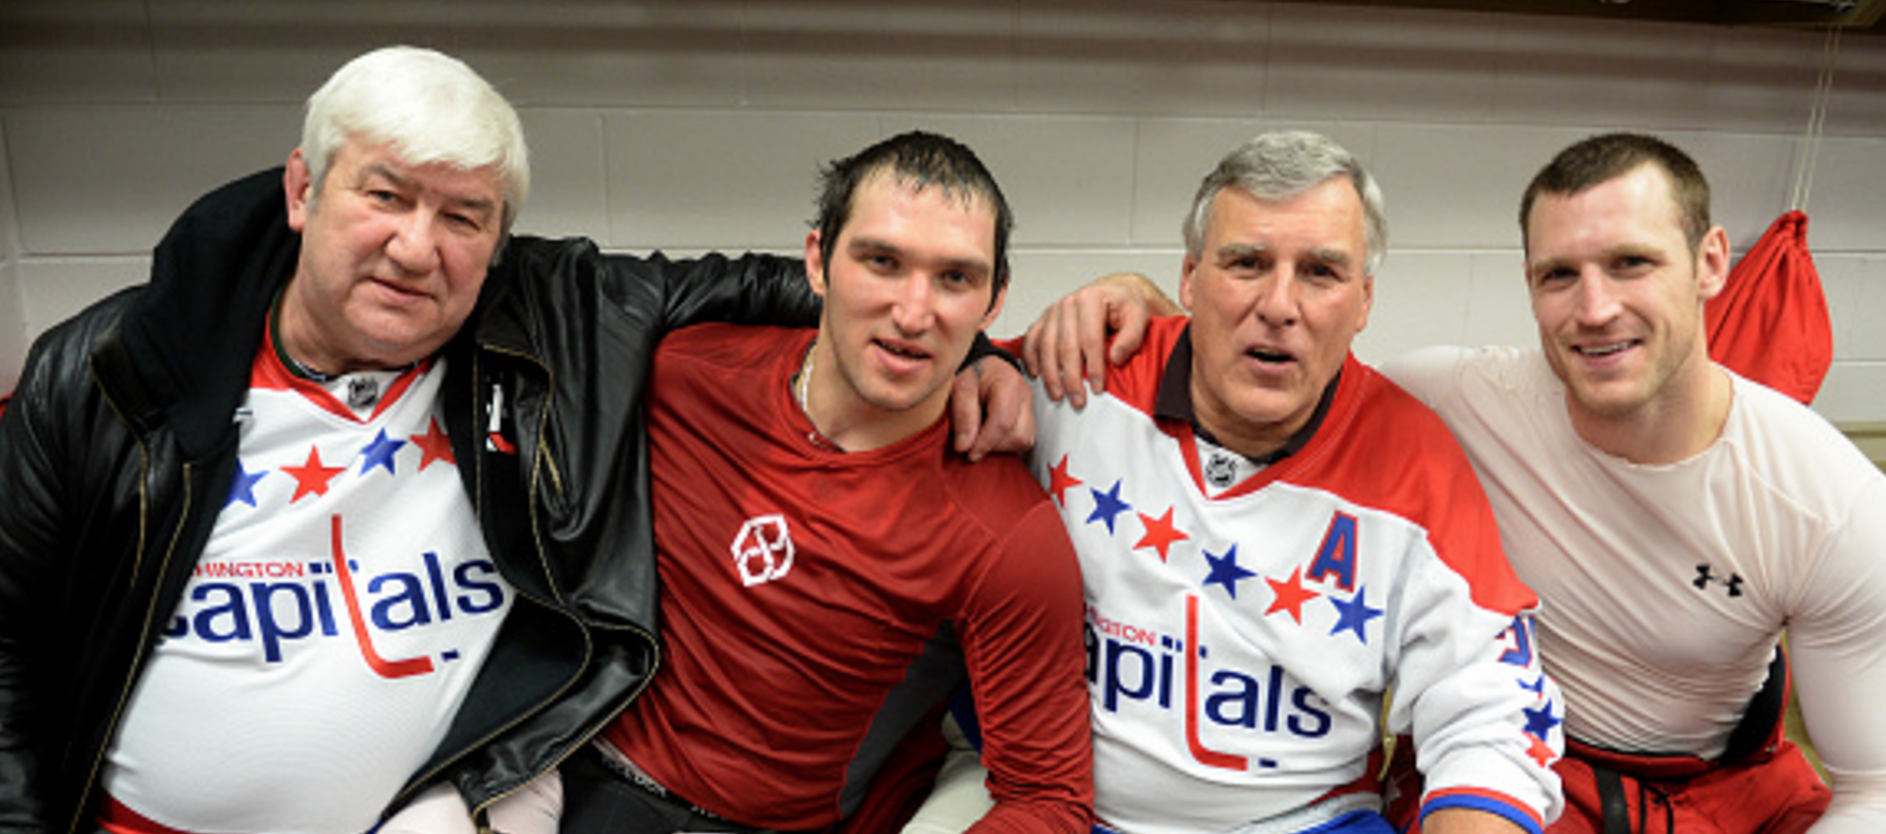 BarDown: Alexander Ovechkin tweeted this heartfelt message after Brooks Laich was traded